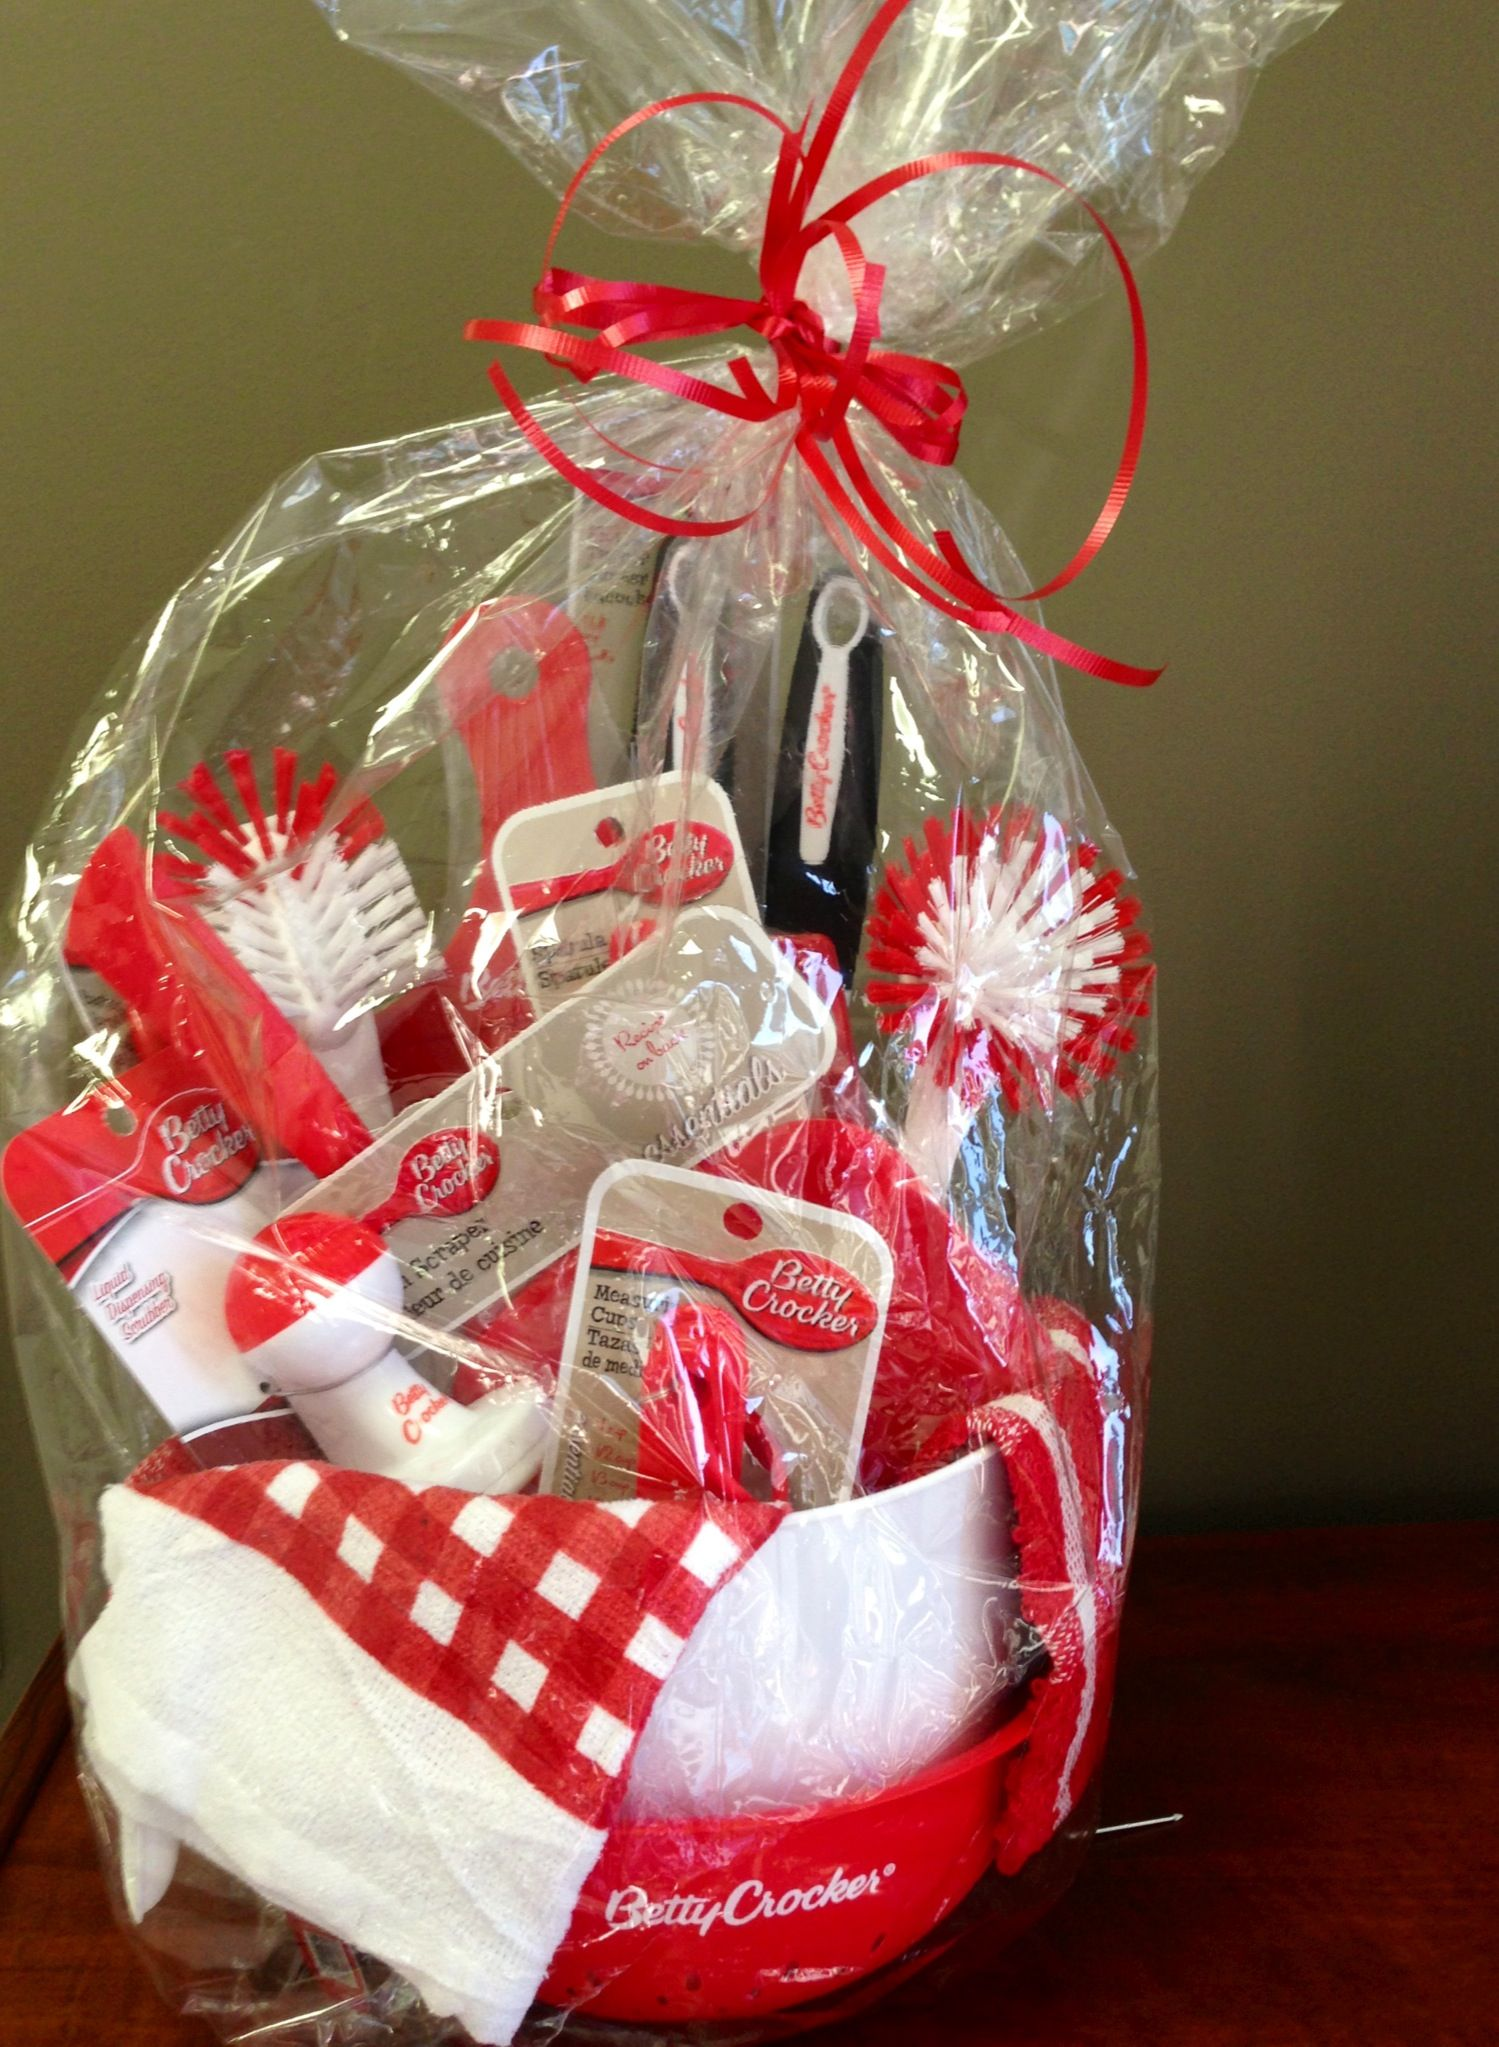 Kitchen Present Kitchen Gift Basket From The Dollar Tree Good For Showers And My